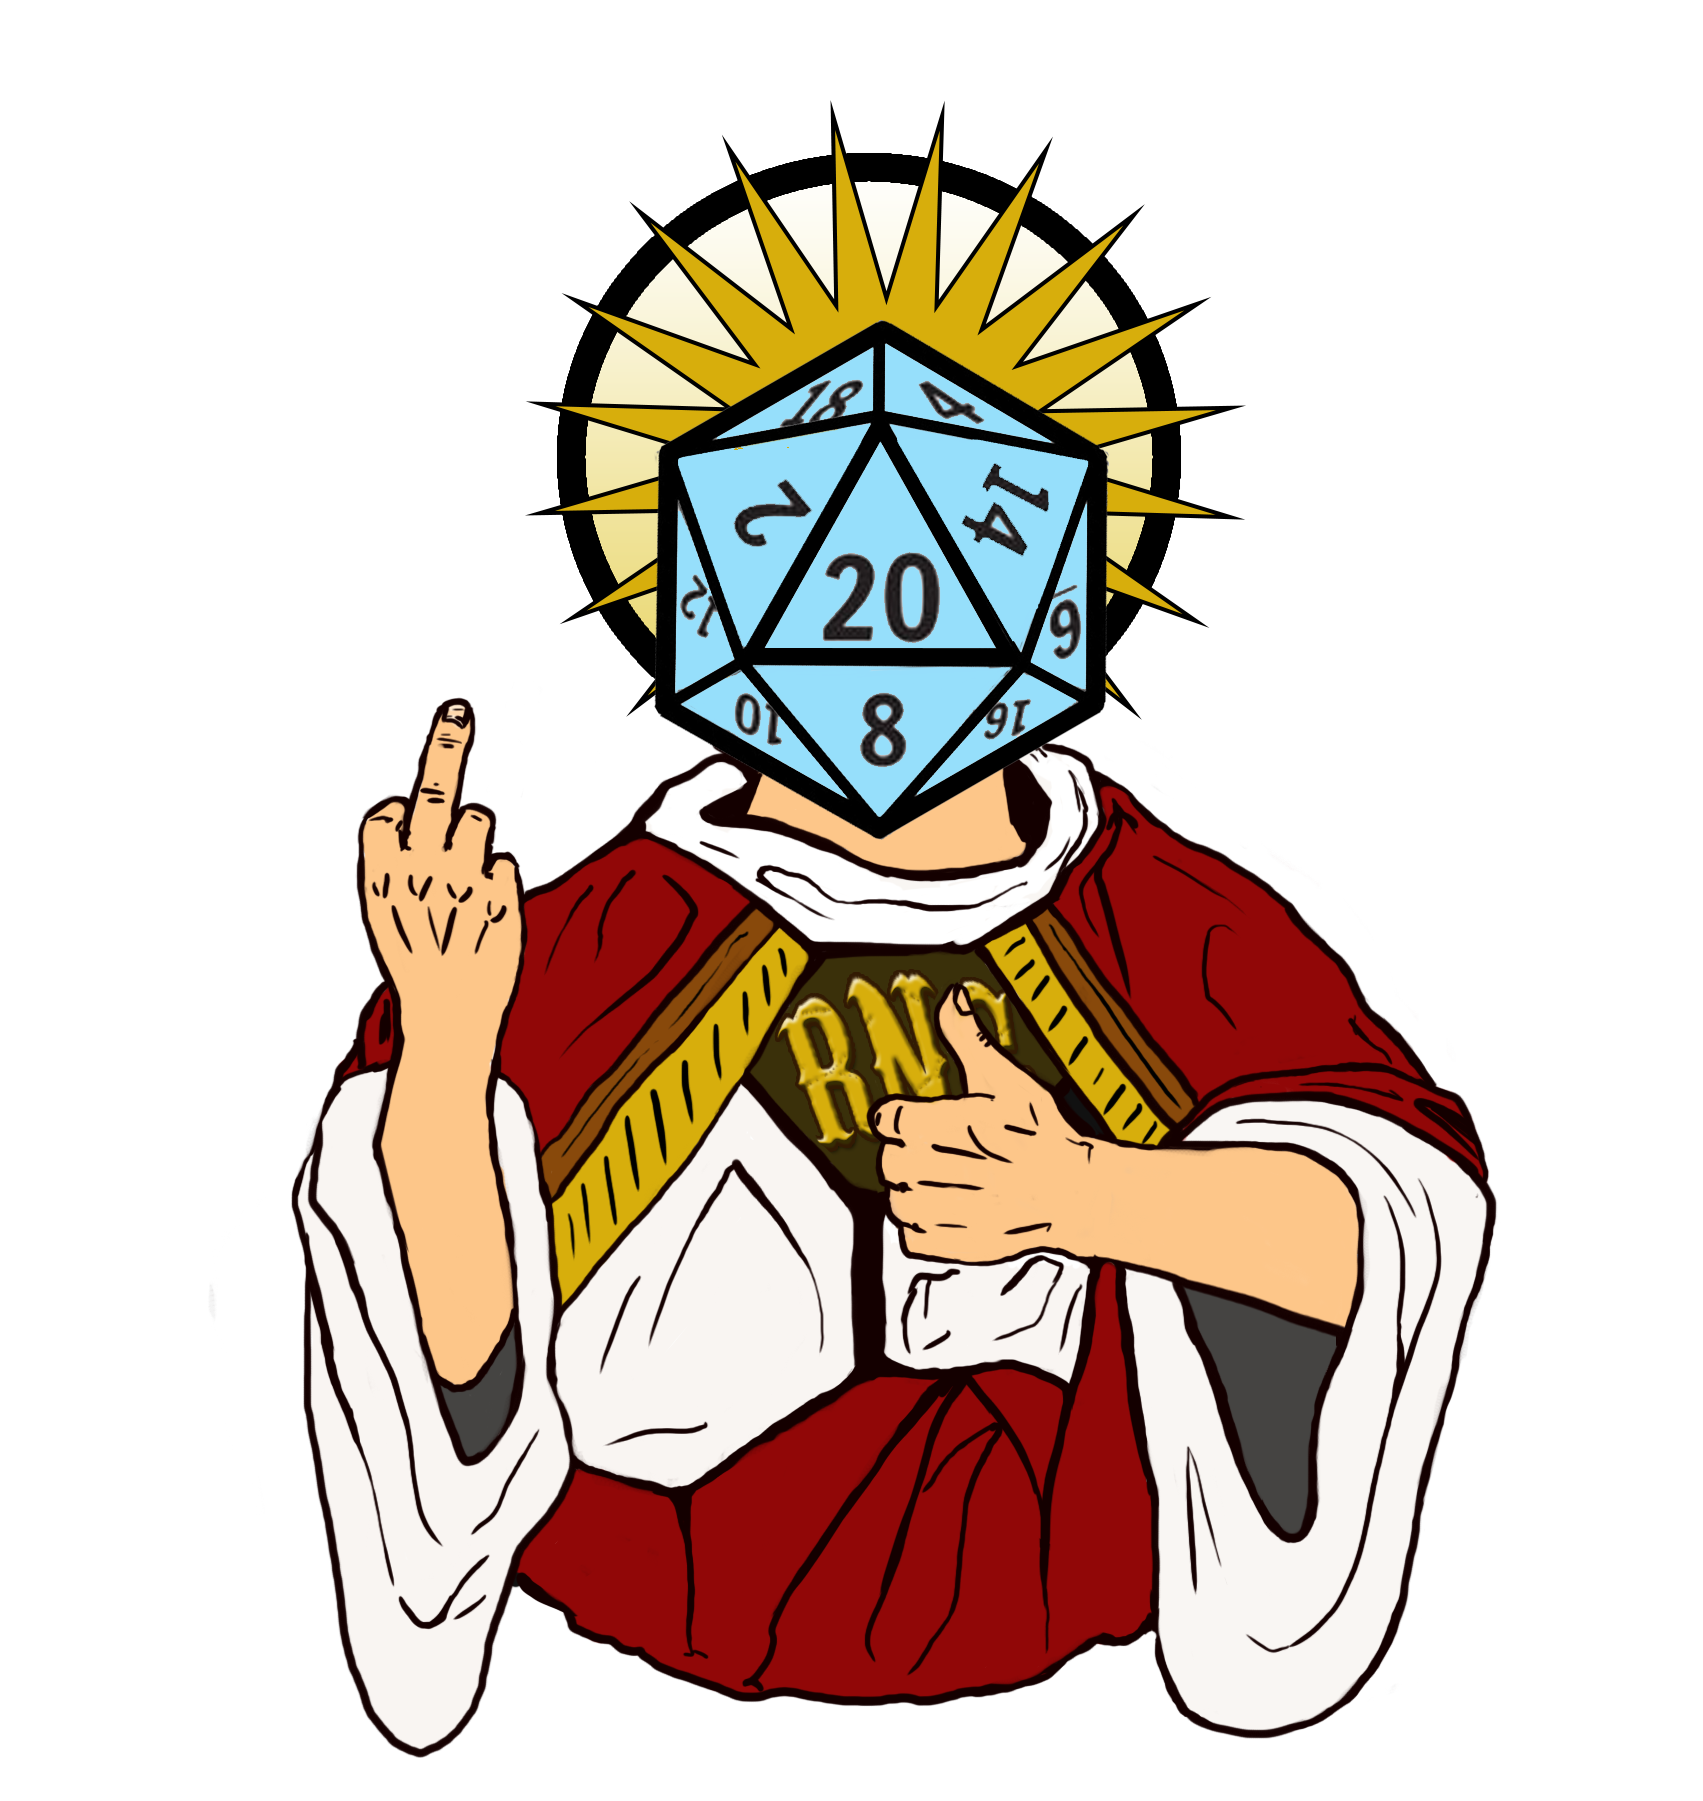 D20 clipart 20 sided dice. The conscious geek ingredients